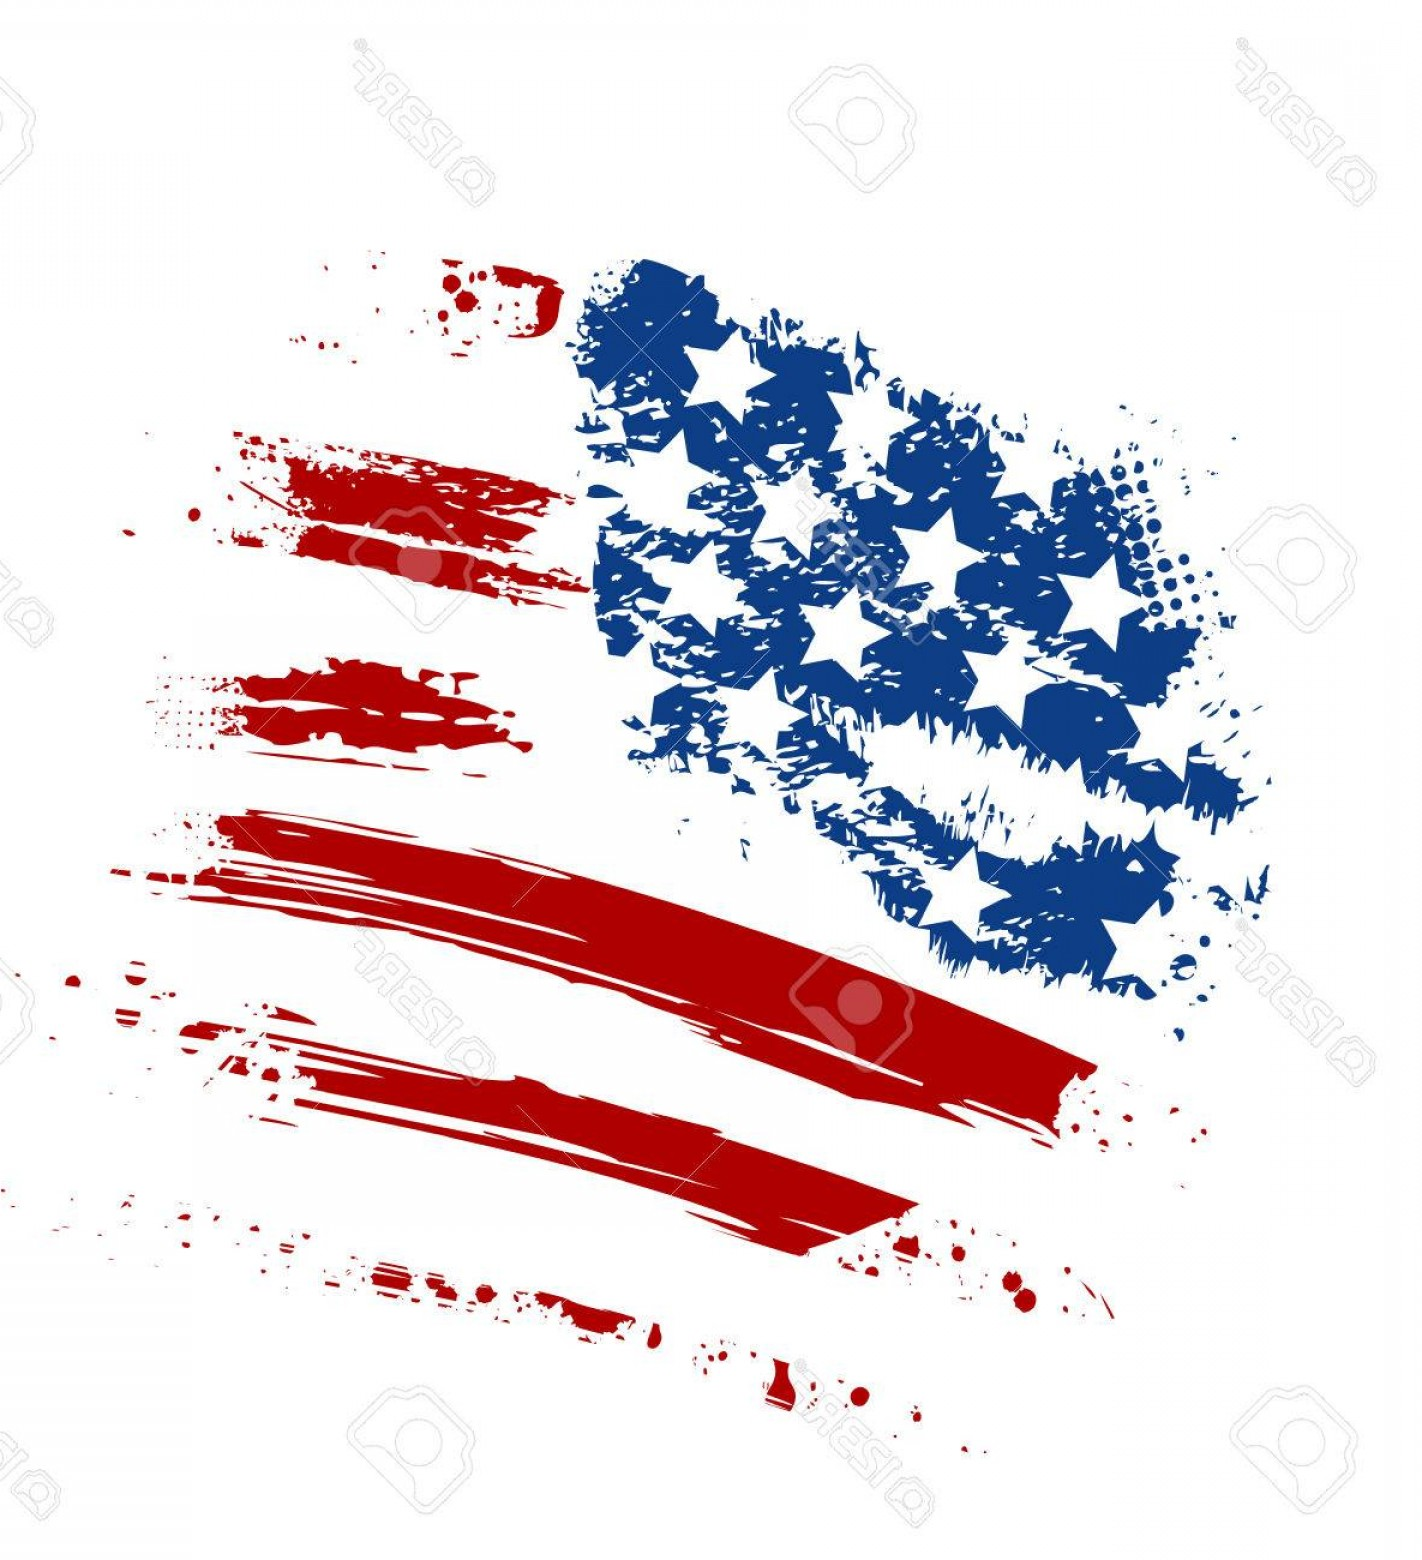 US Flag Vector Lines: Photostock Vector Grunge American Usa Flag Splattered Star And Stripes